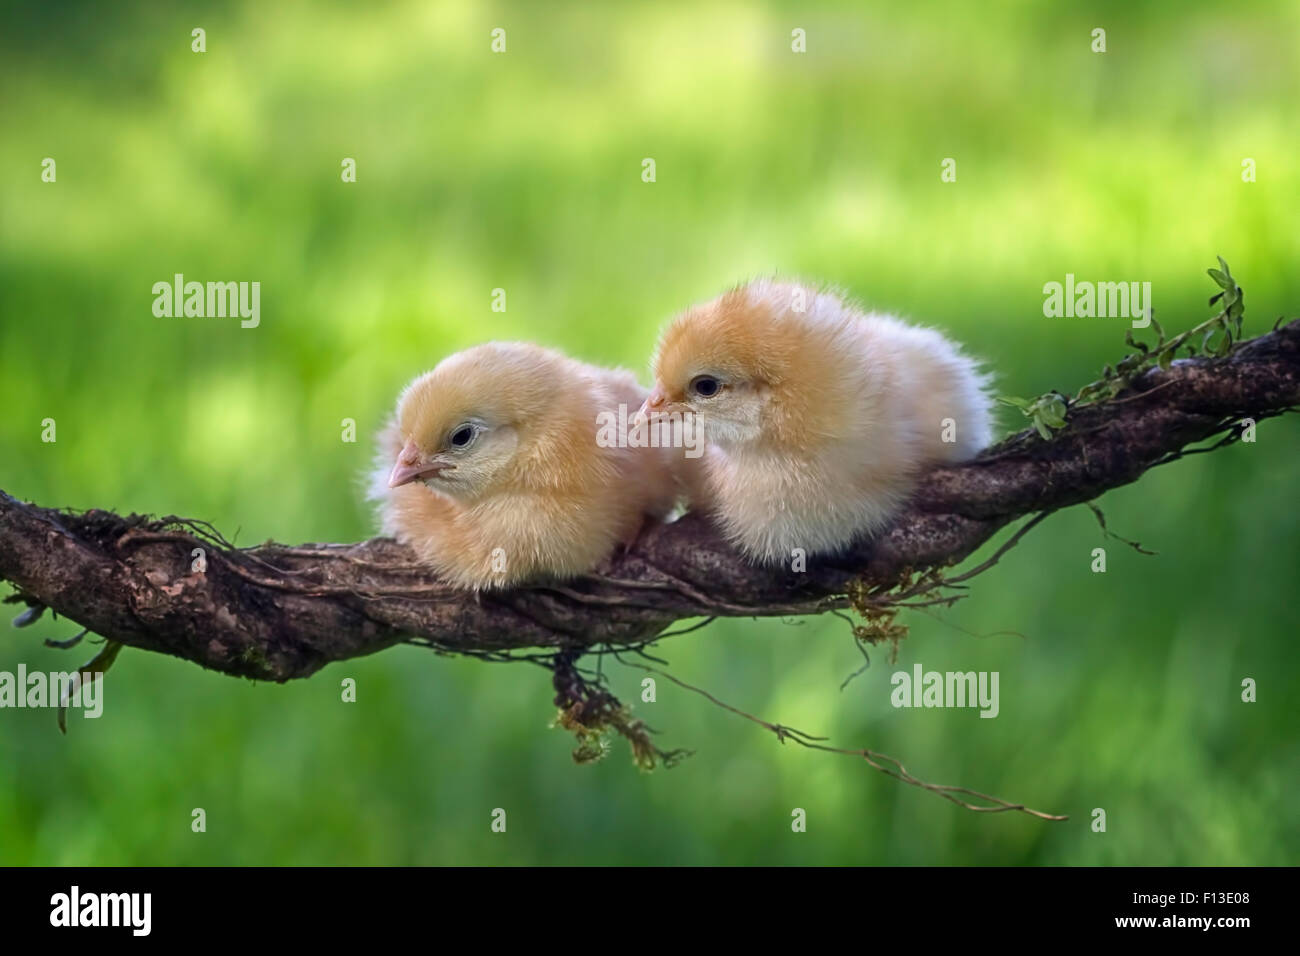 Two chicks sitting on a vine - Stock Image